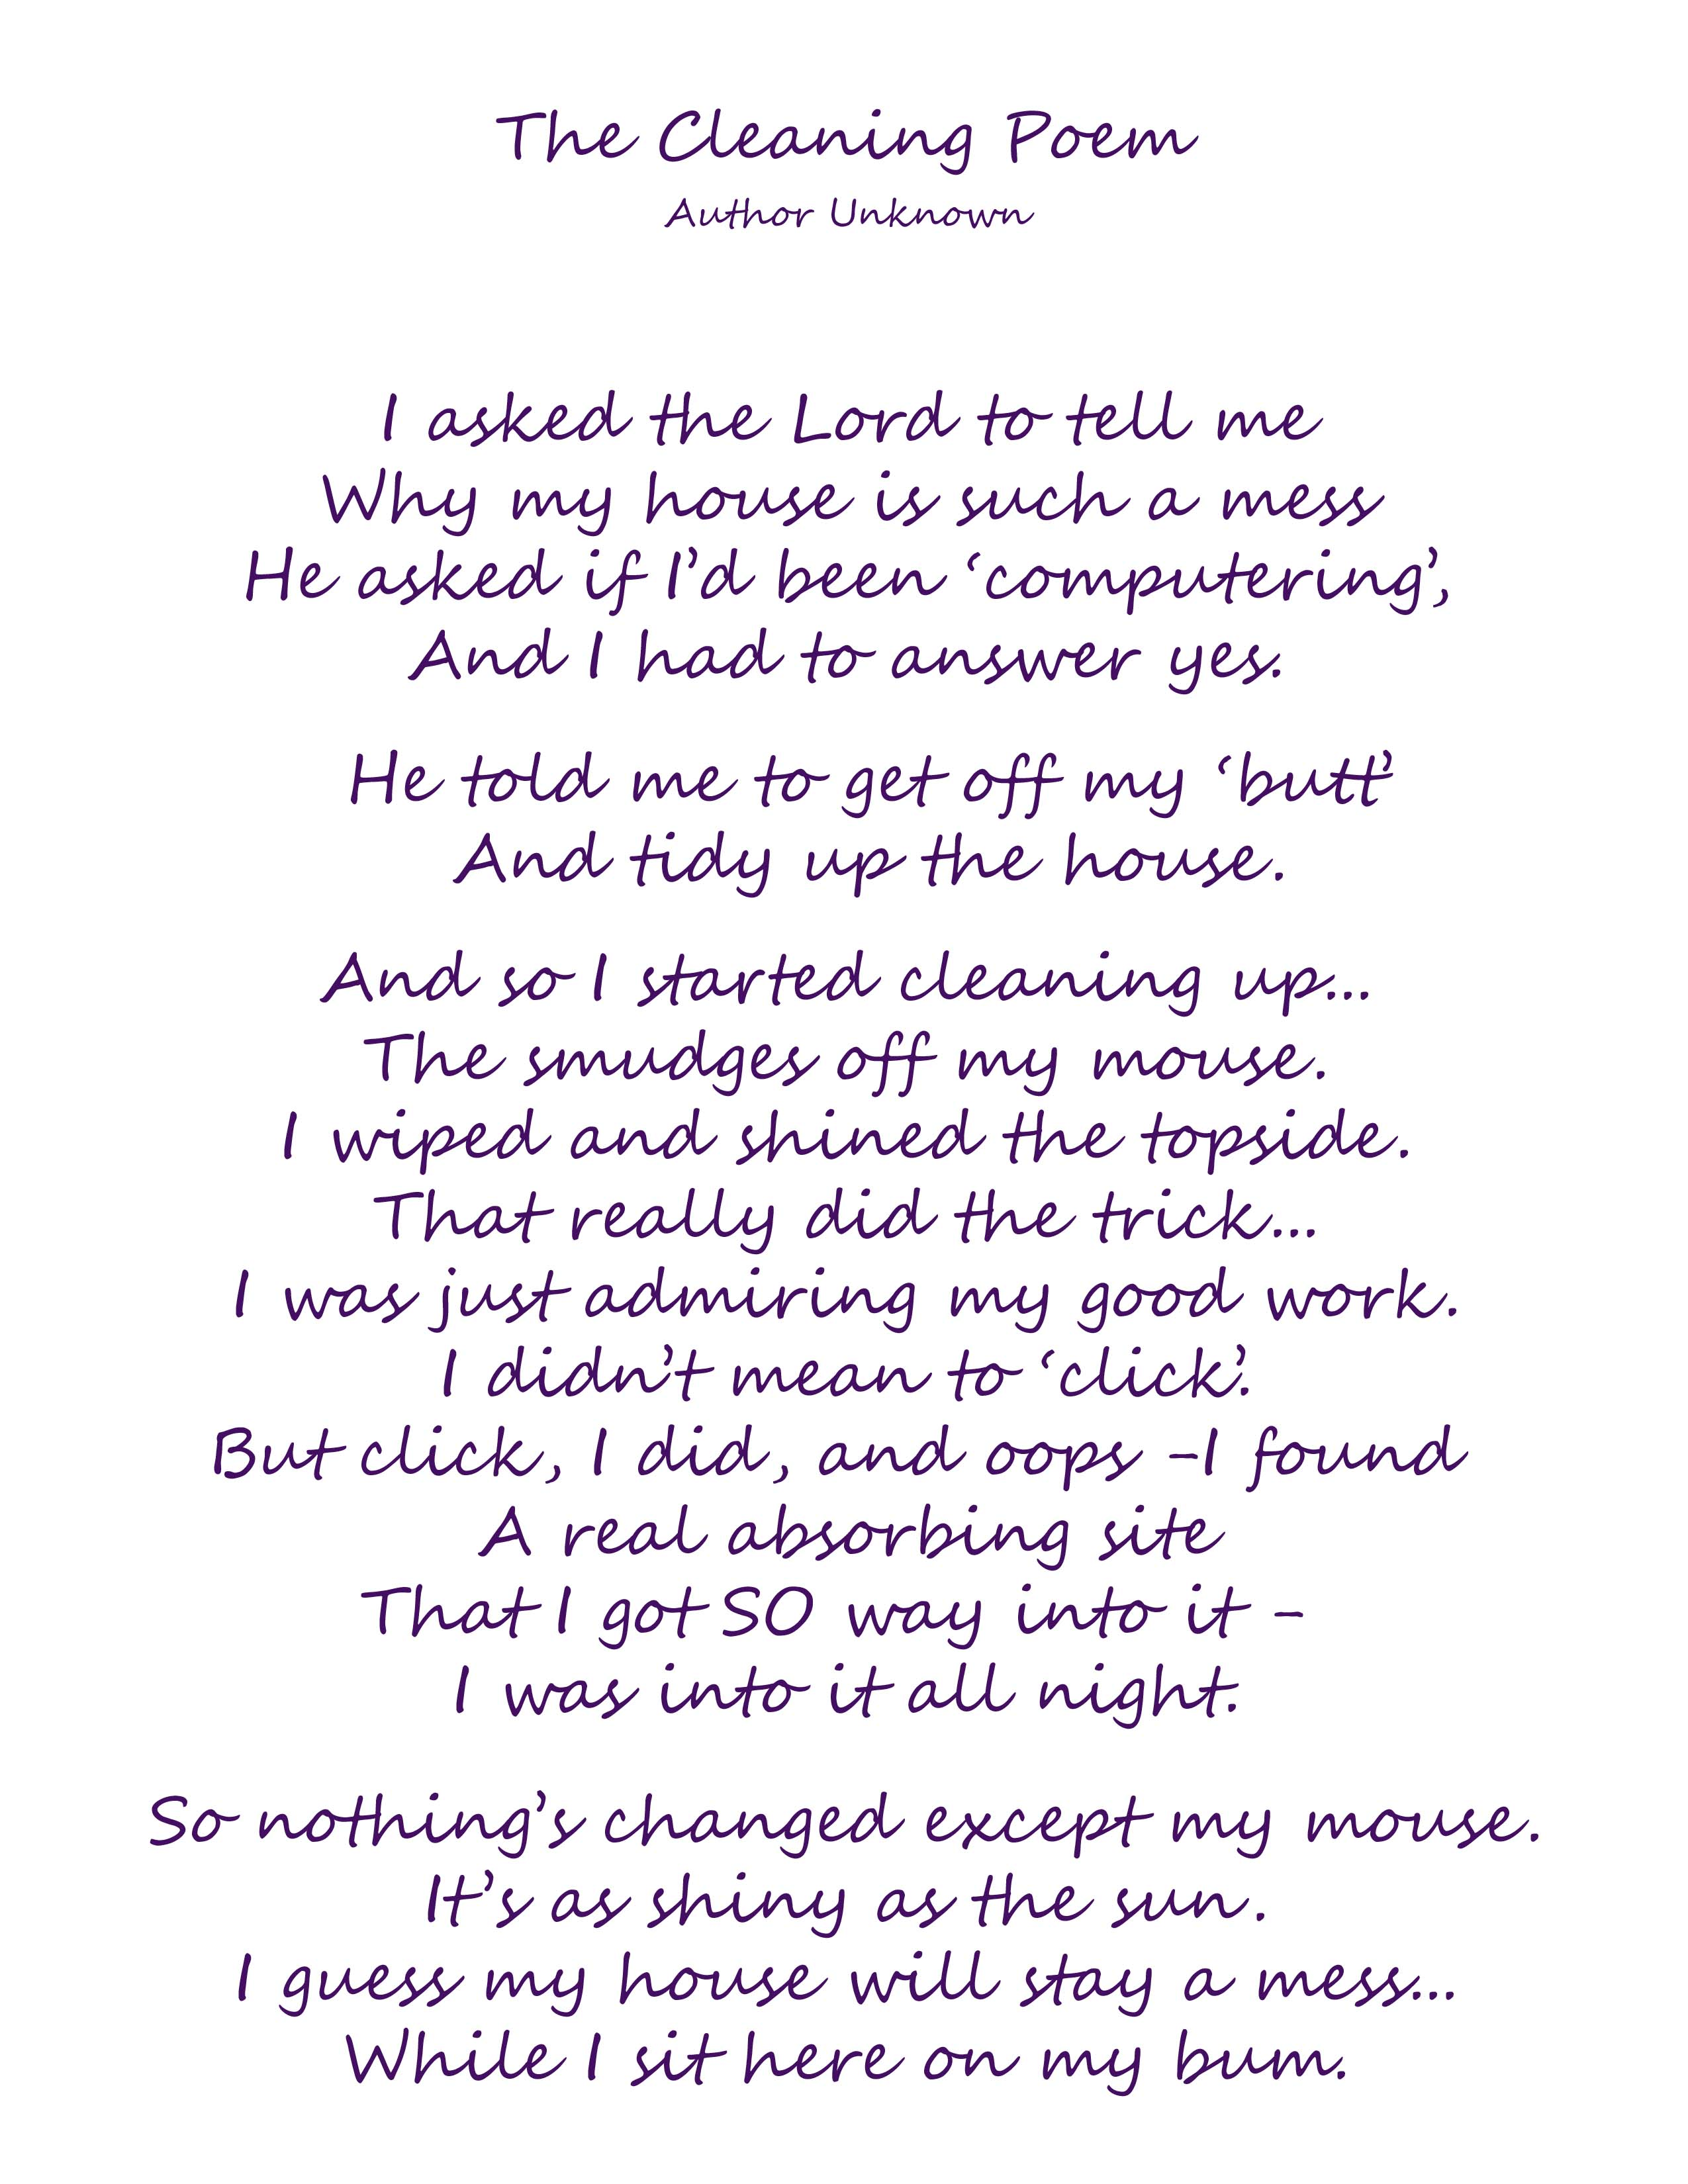 The Cleaning Poem